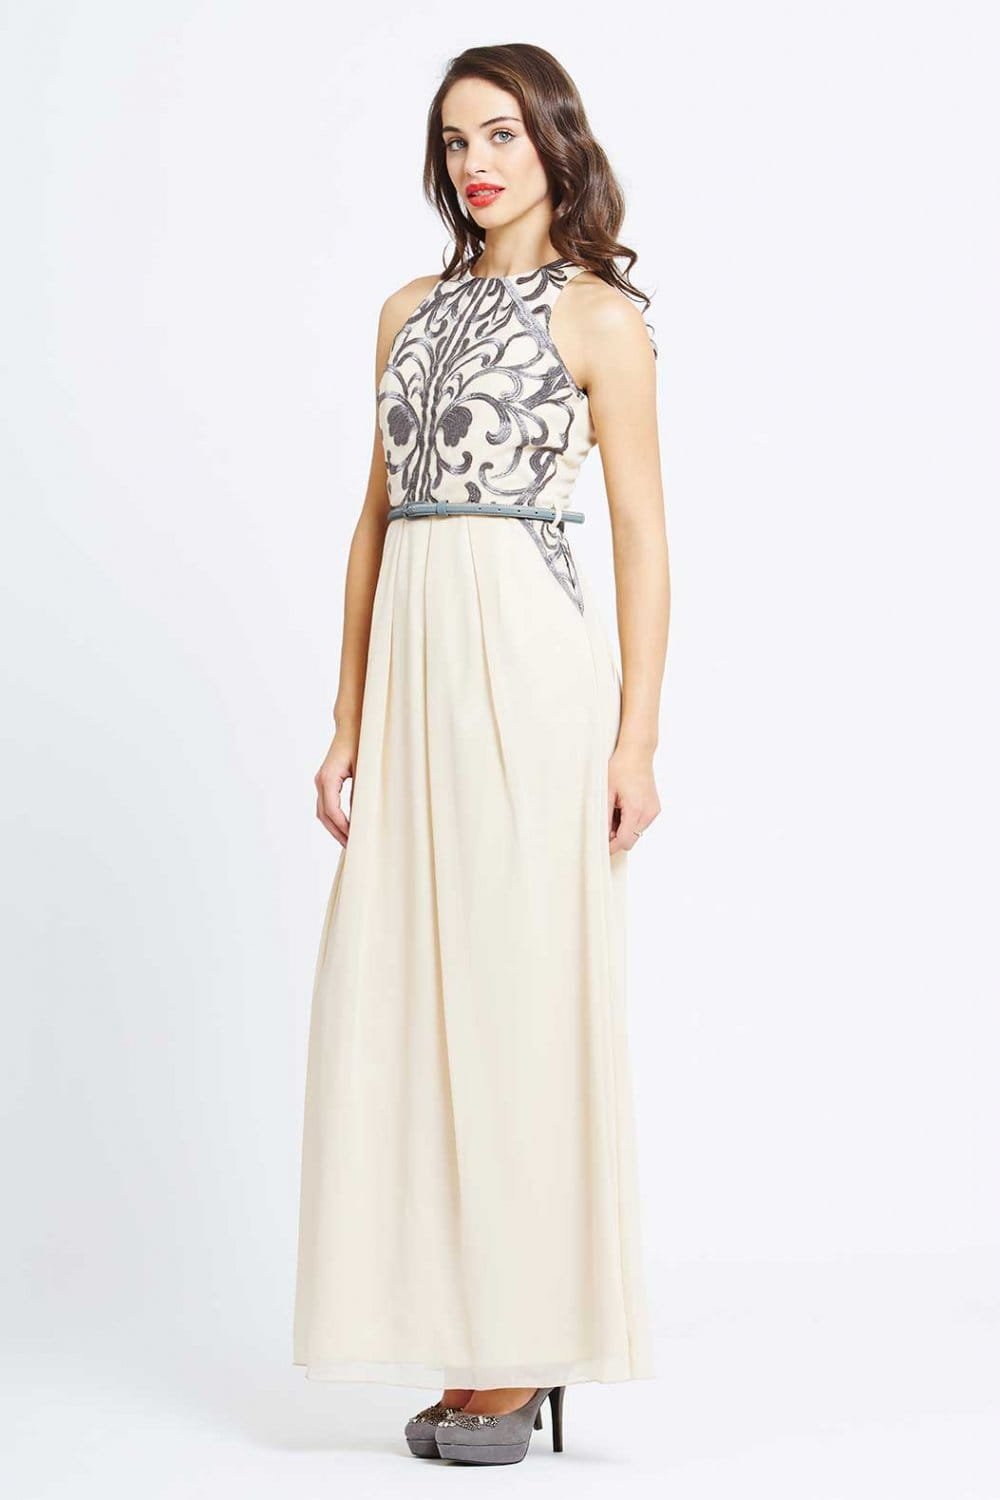 Little Mistress Cream Heavily Embellished Maxi Dress - Little ...